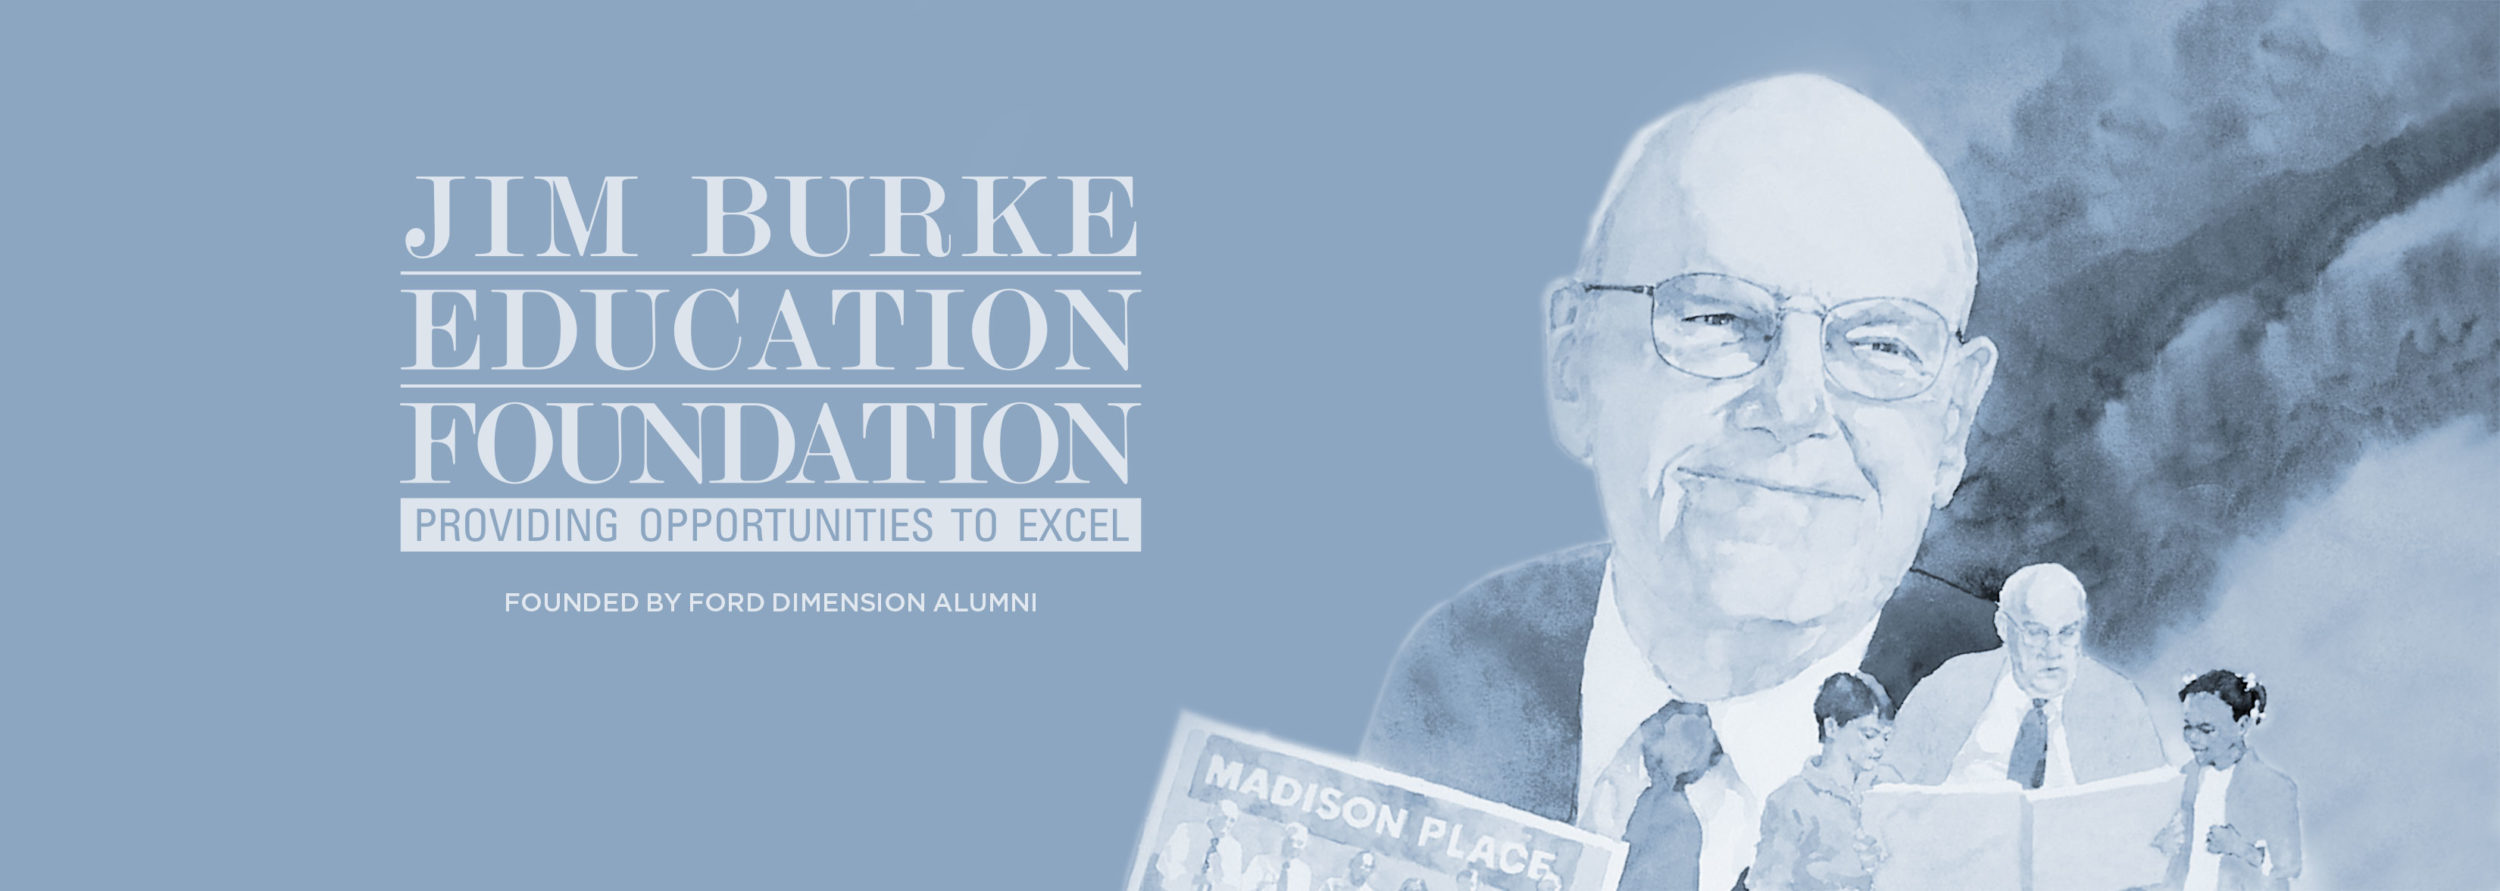 Jim Burke Education Foundation CONTACT MIKIE HAY 661-328-3691 Bakersfield